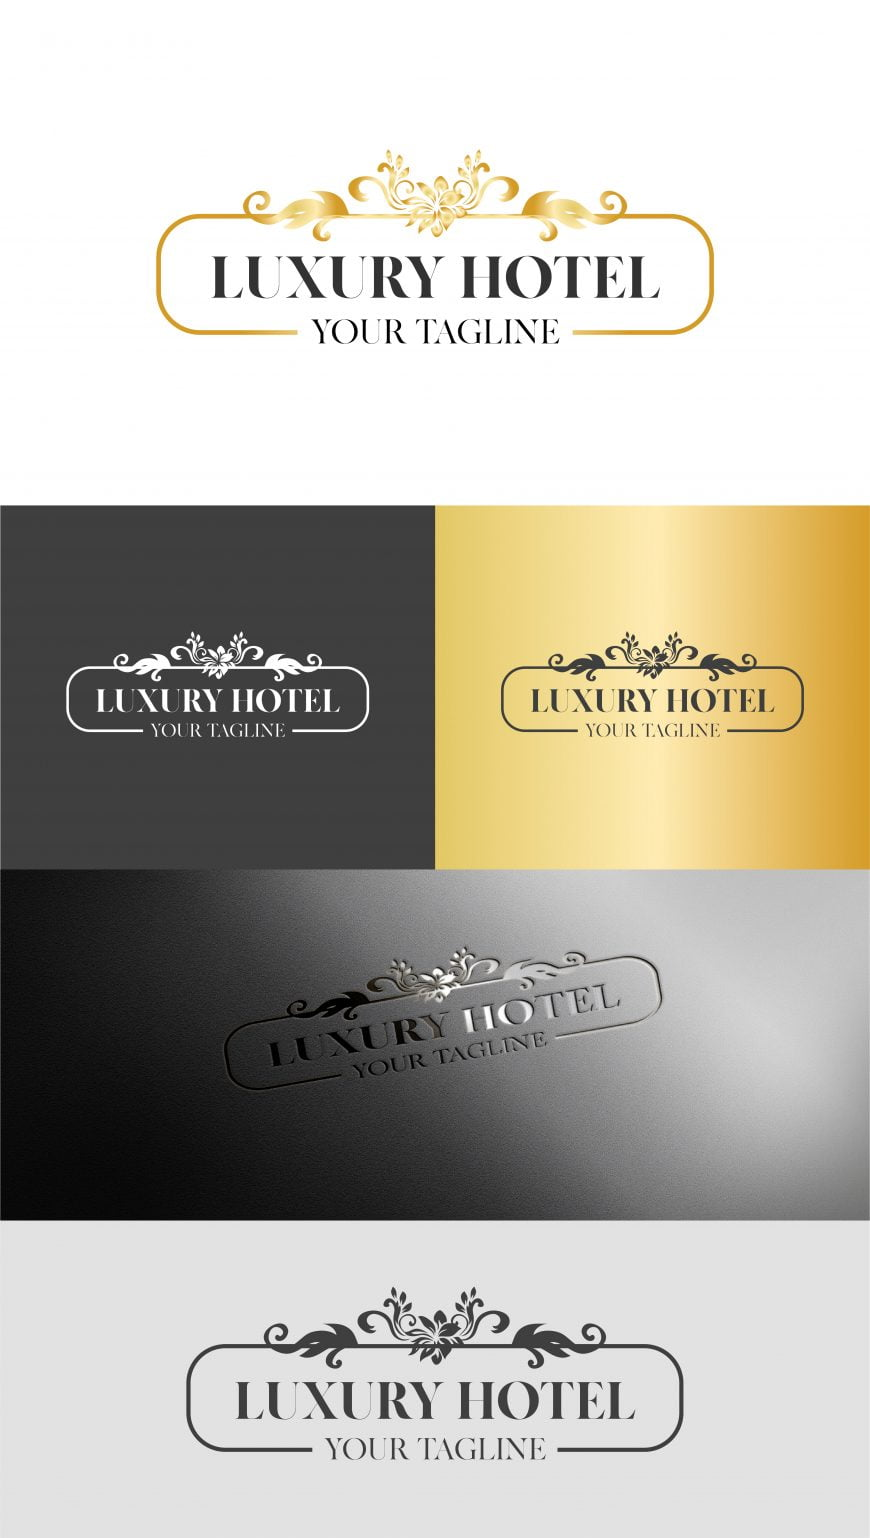 LUXURY-HOTEL-LOGO-TEMPLATE-scaled